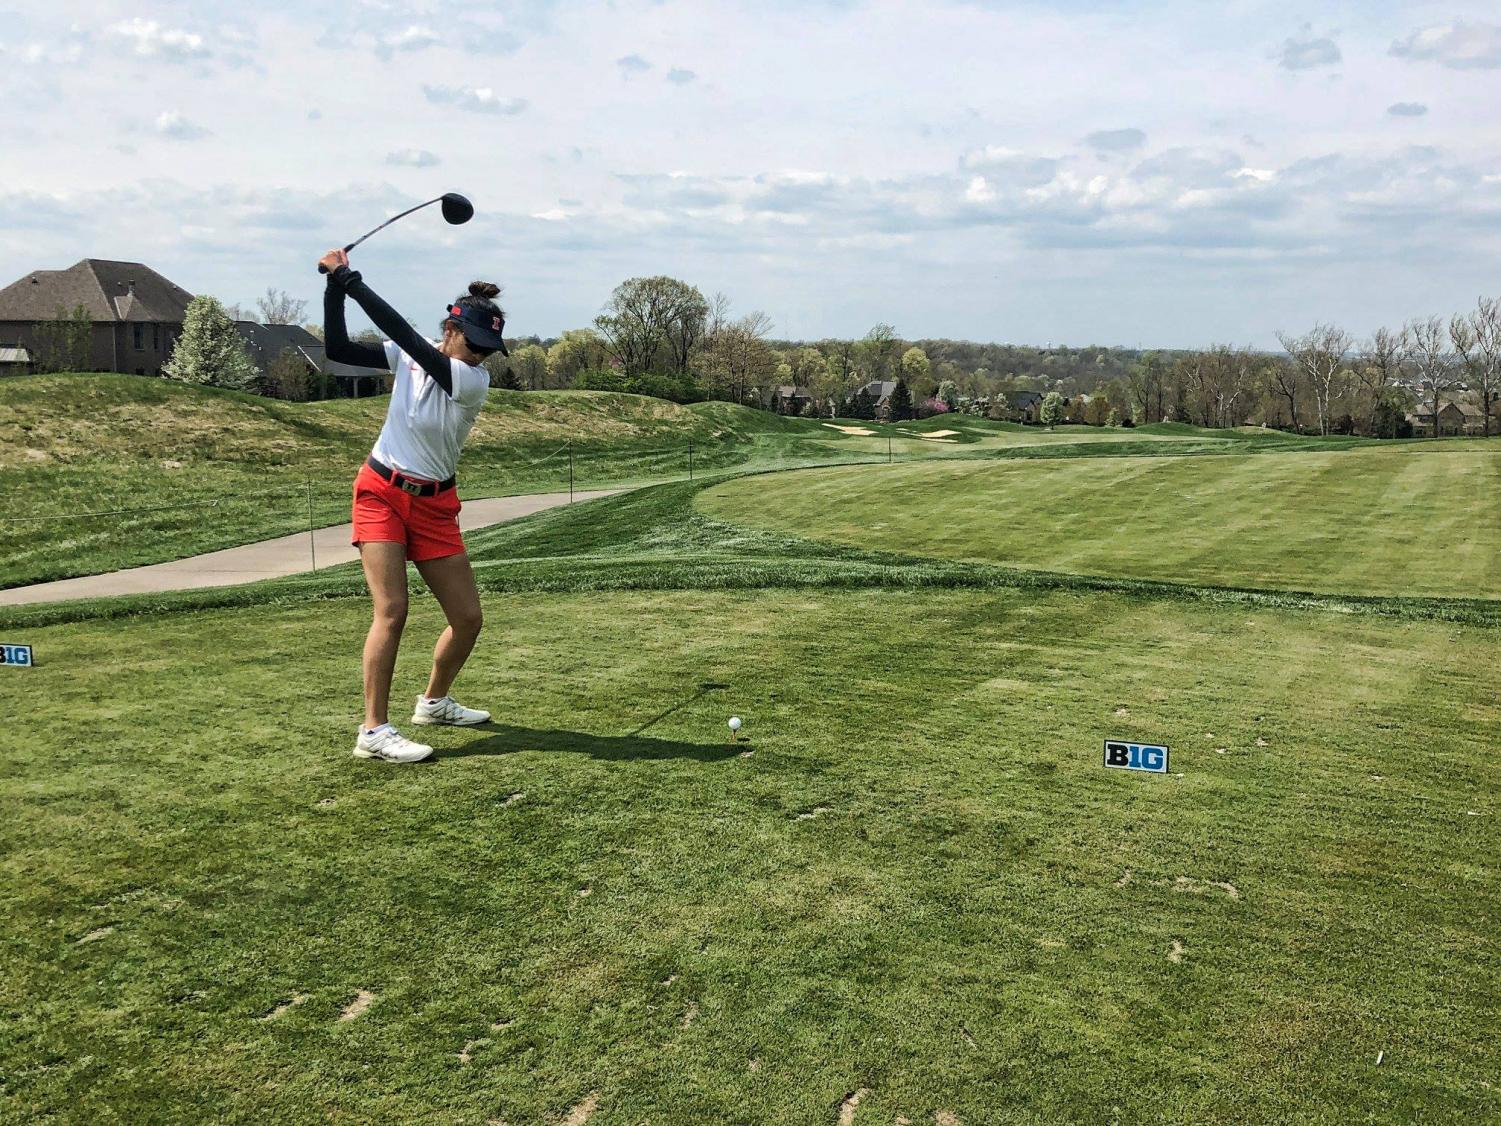 Bing Singhsumalee golfs at the Big Ten Championships at Mainesville, Ohio. The Illinois women's golf team is headed to Michigan for the NCAA women's golf regional Monday-Wednesday.